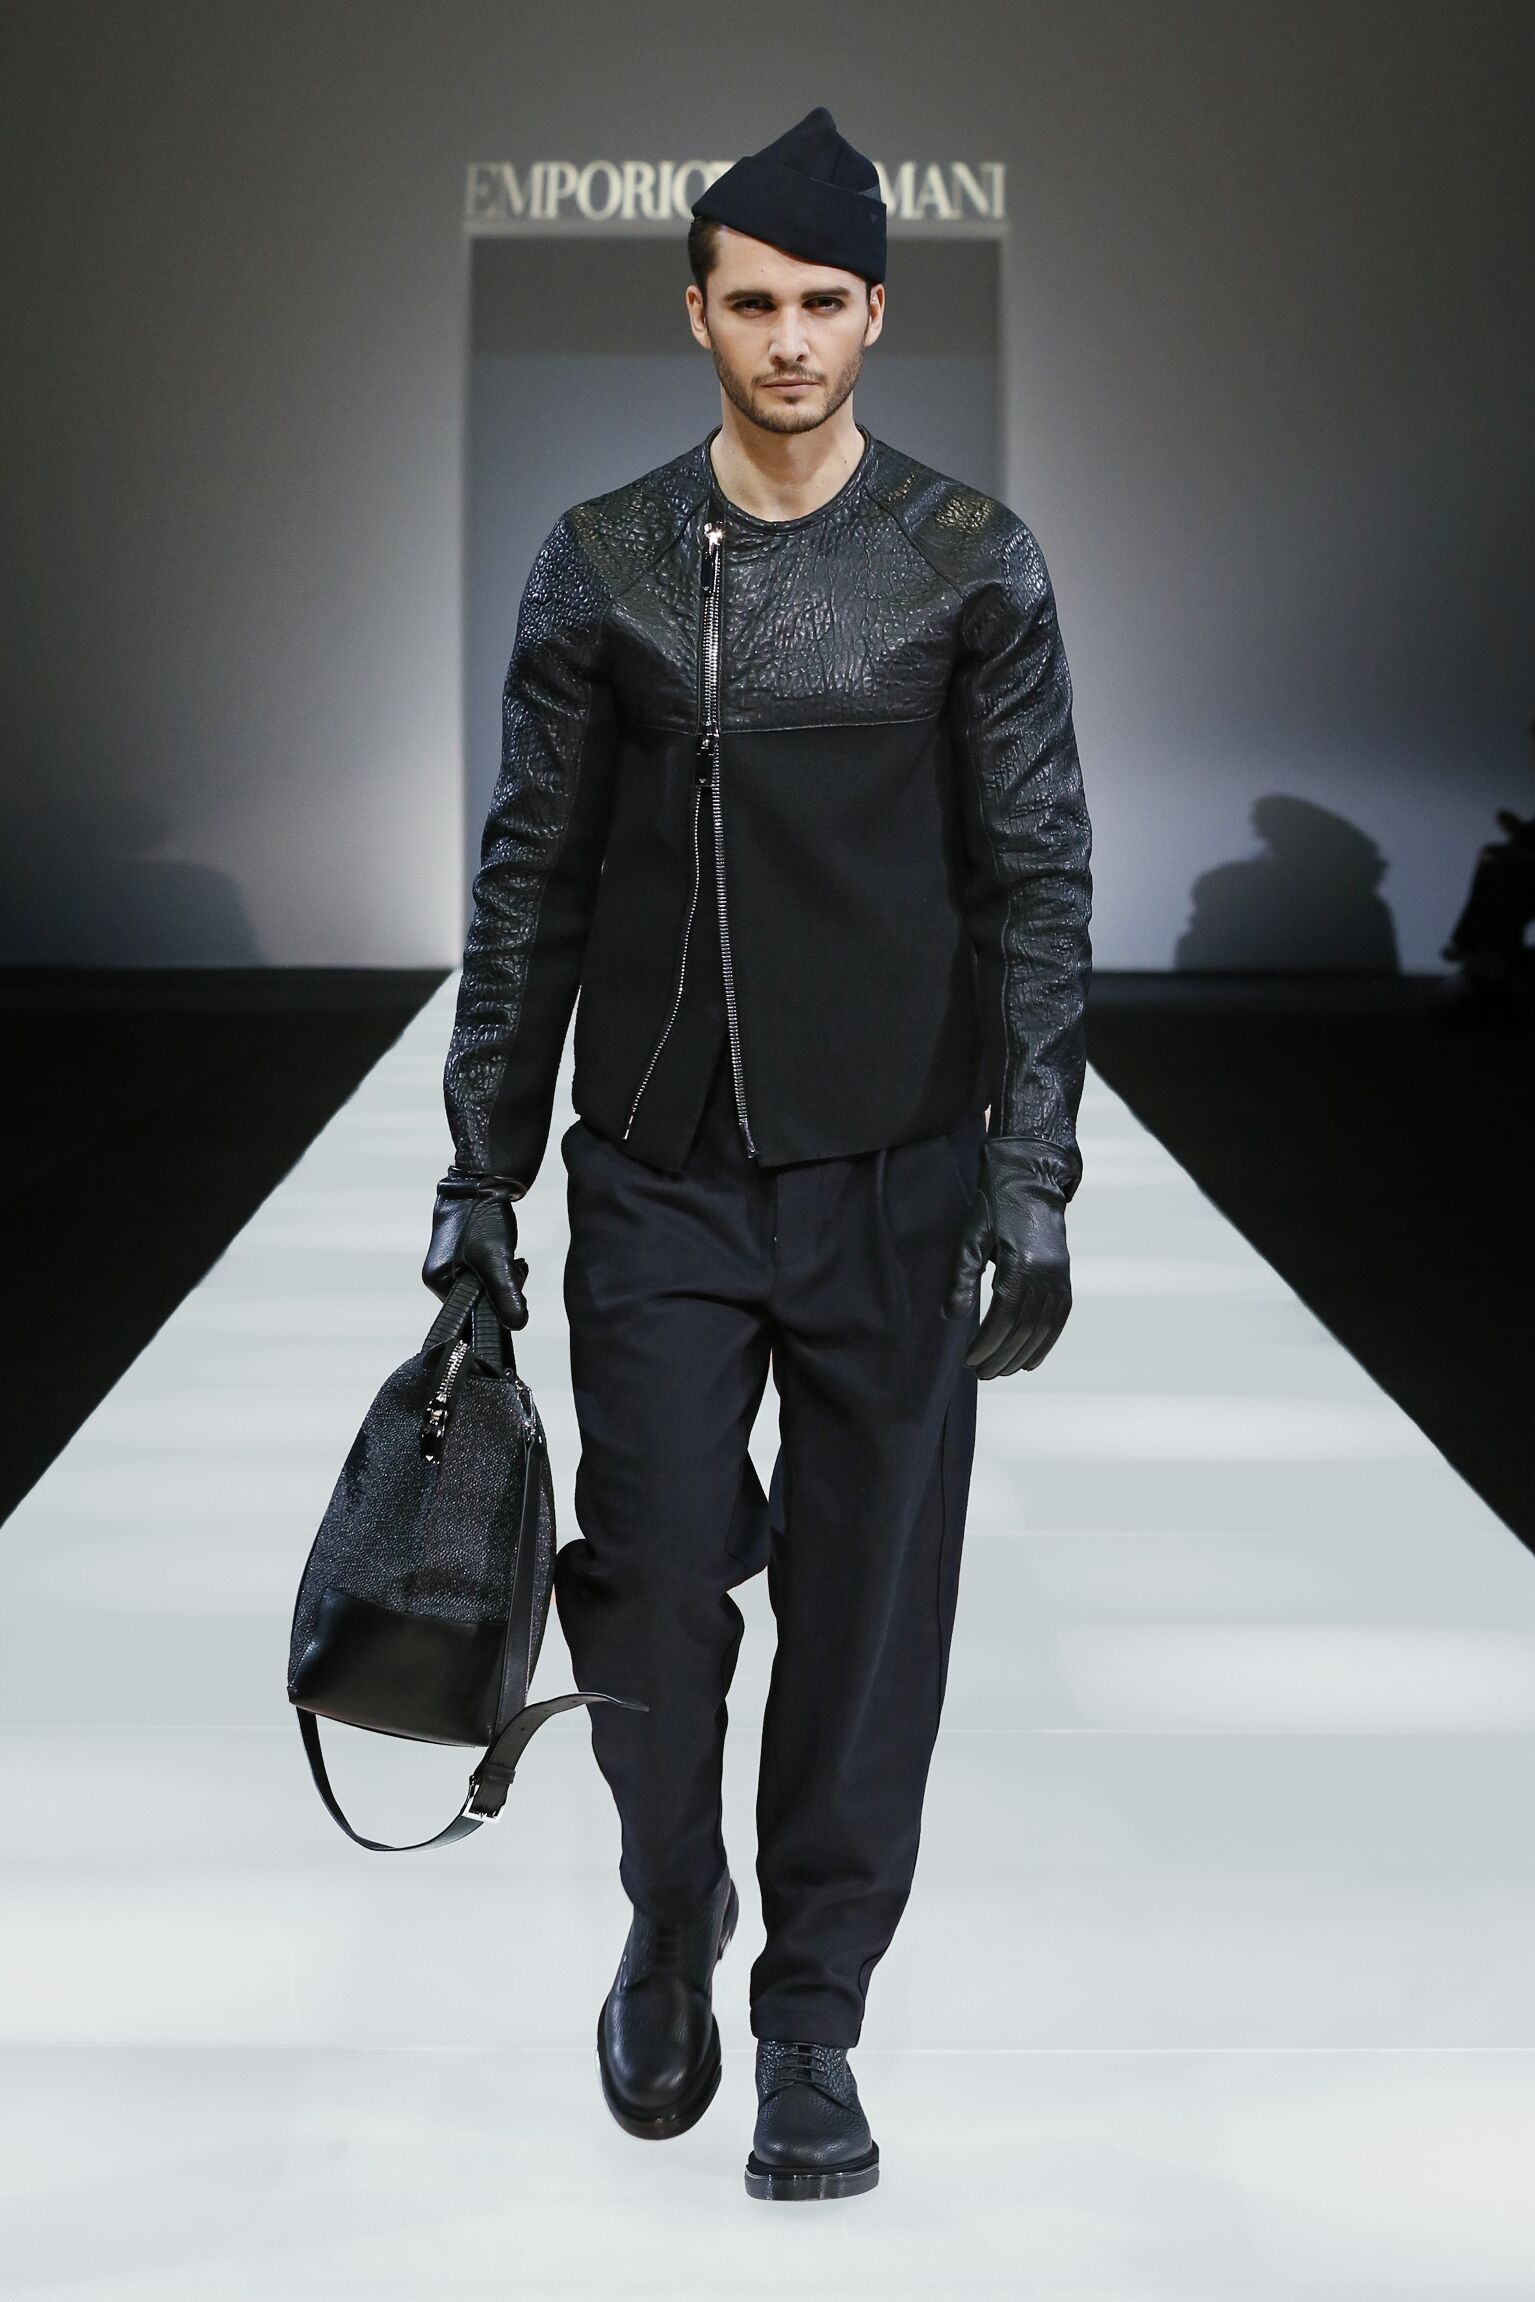 Emporio Armani Collection Fall 2015 Catwalk